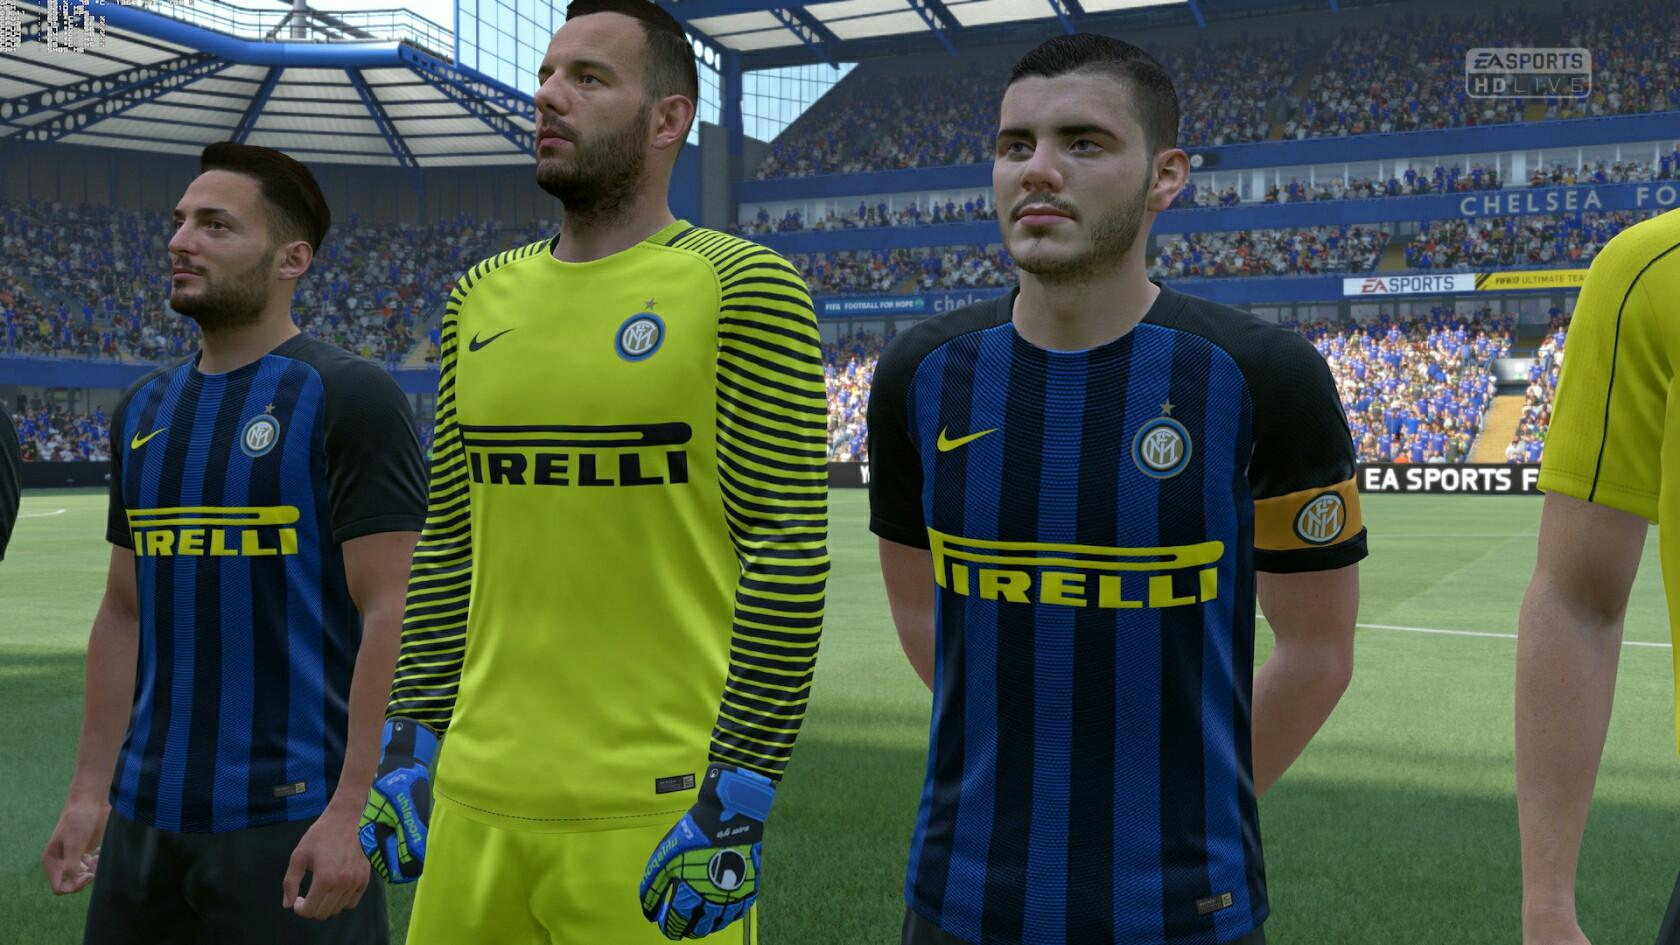 Icardi may be one of the world's best players right now – but he's missing his trademark tattoos in FIFA 18